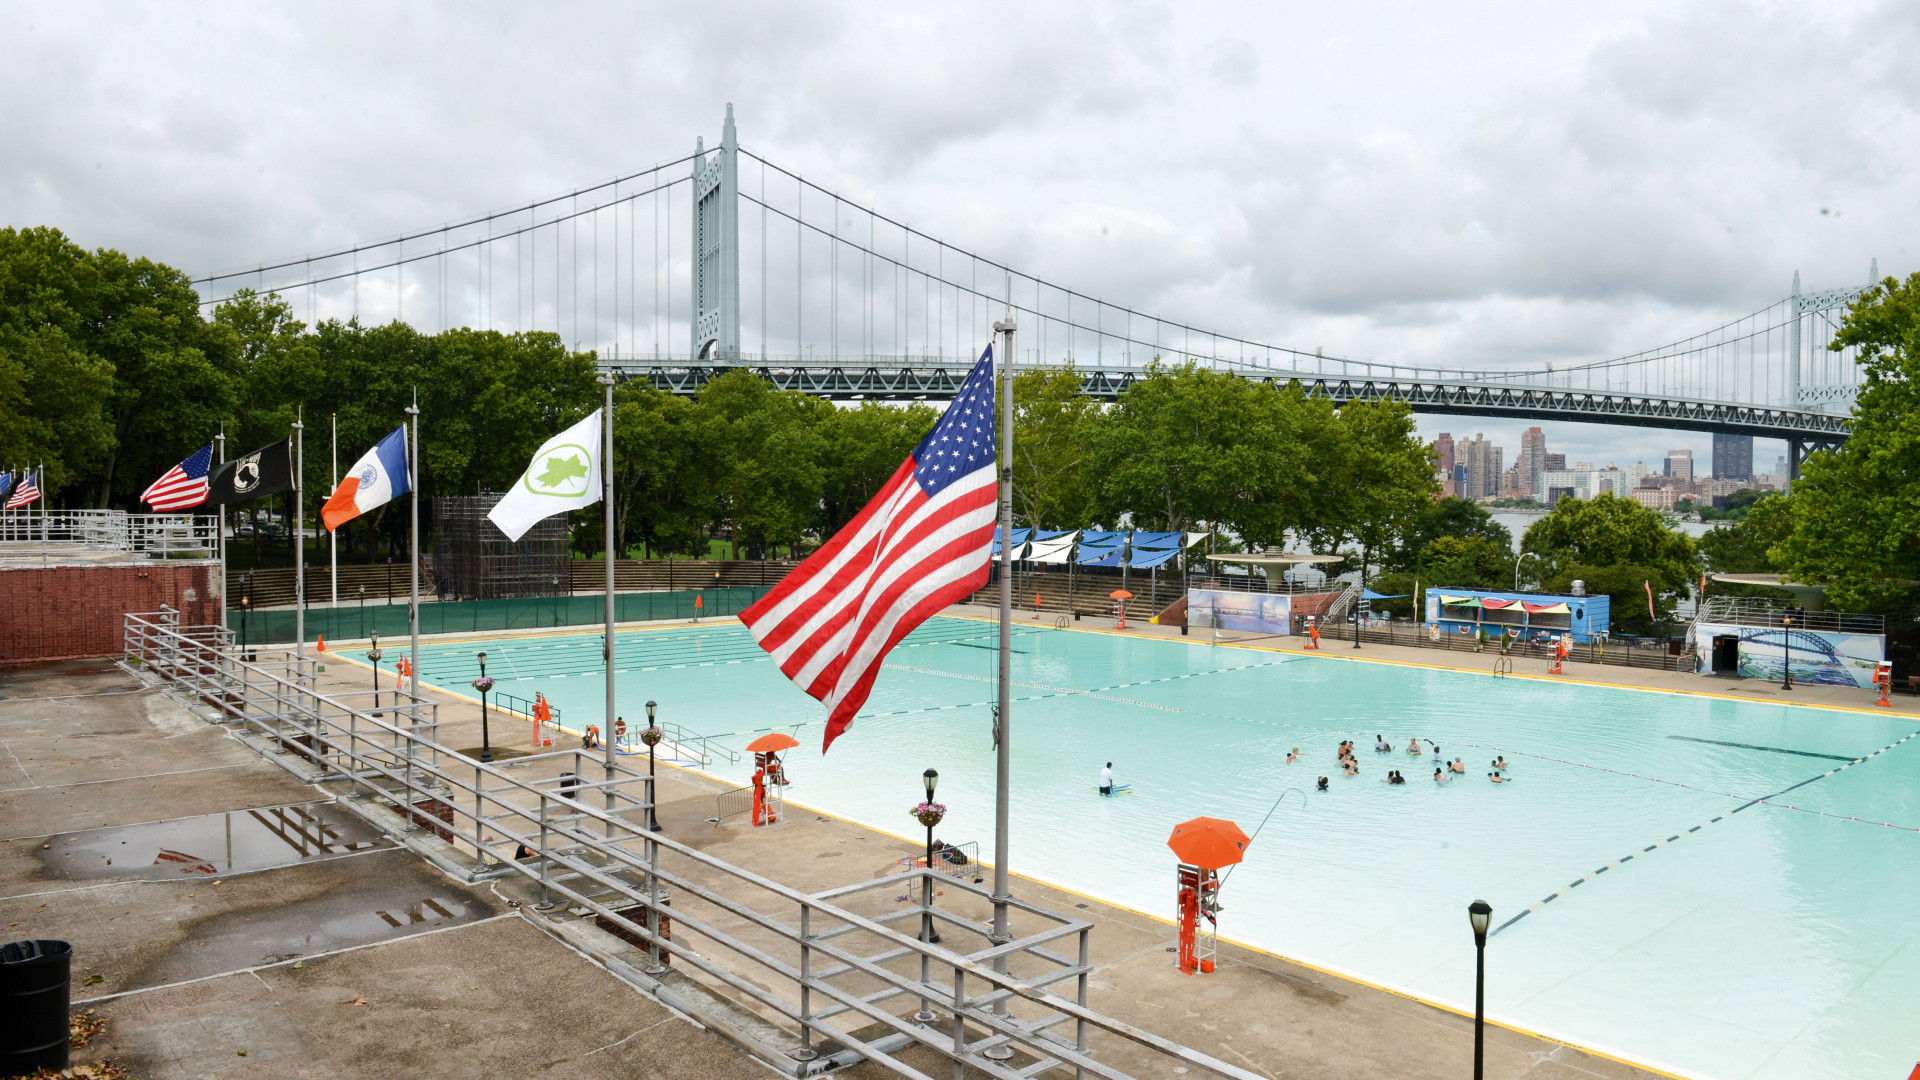 Astoria Pool in Queens, New York City